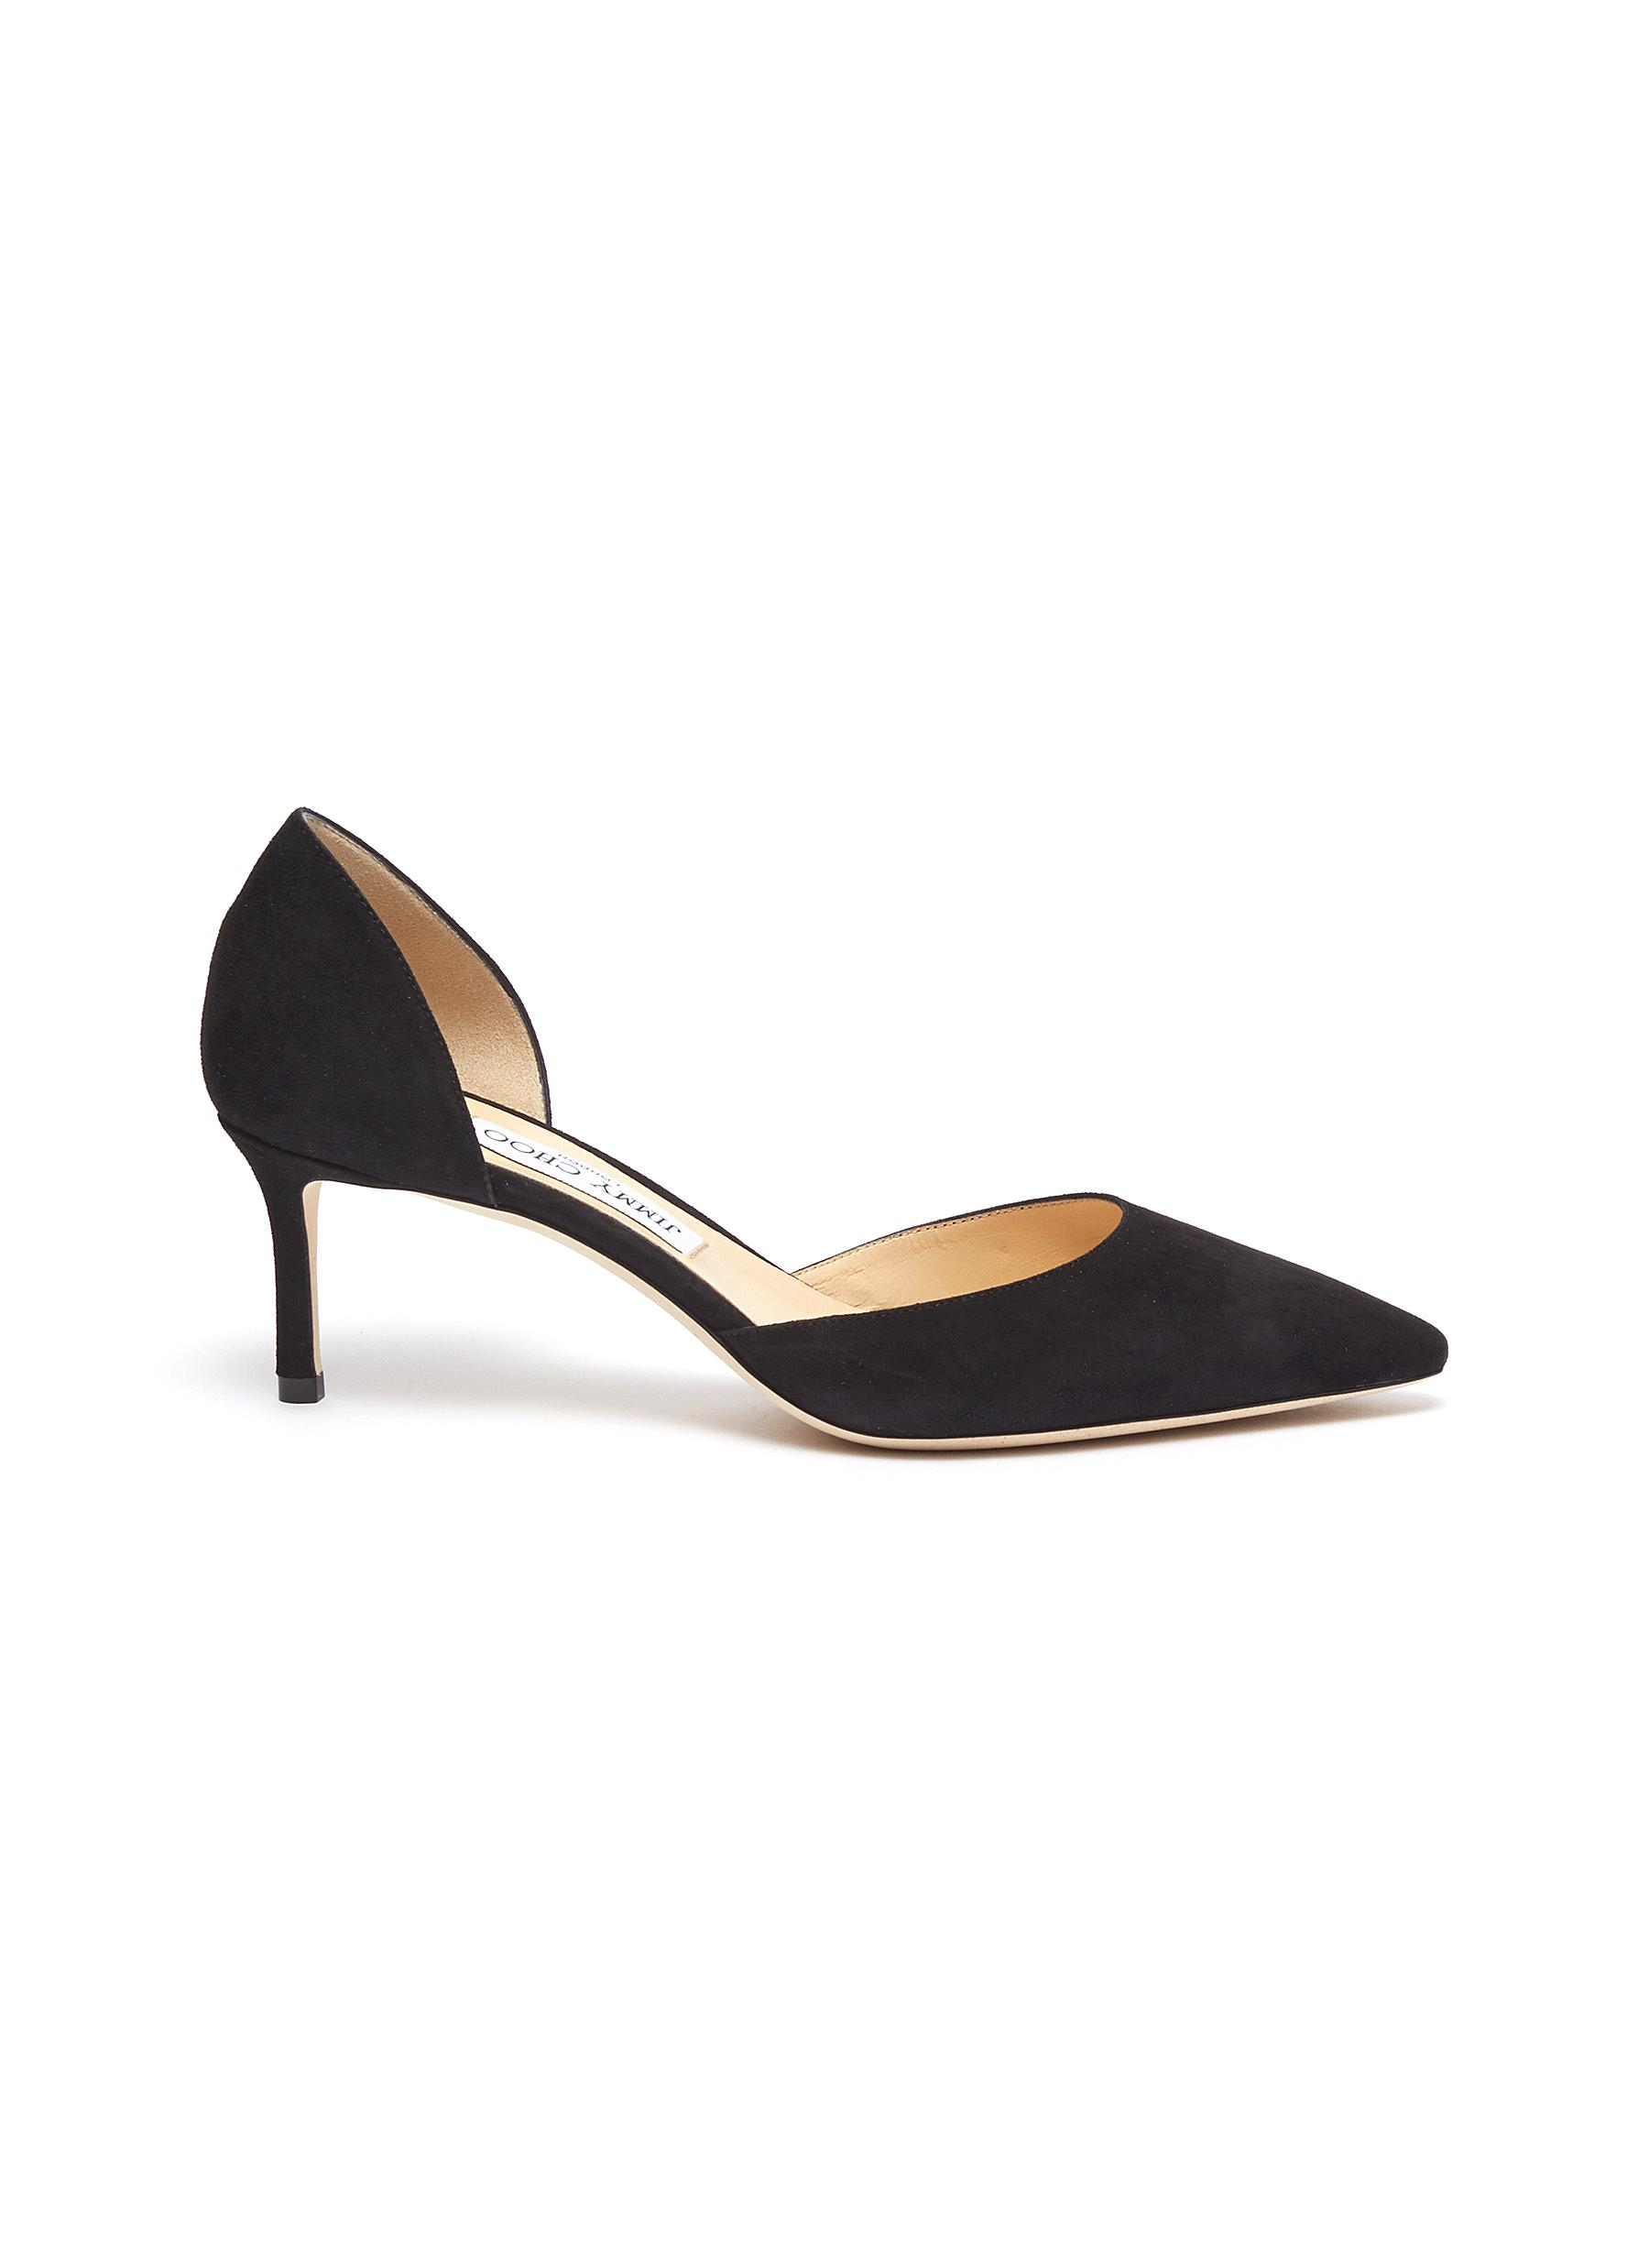 Esther 60 suede dOrsay pumps by Jimmy Choo